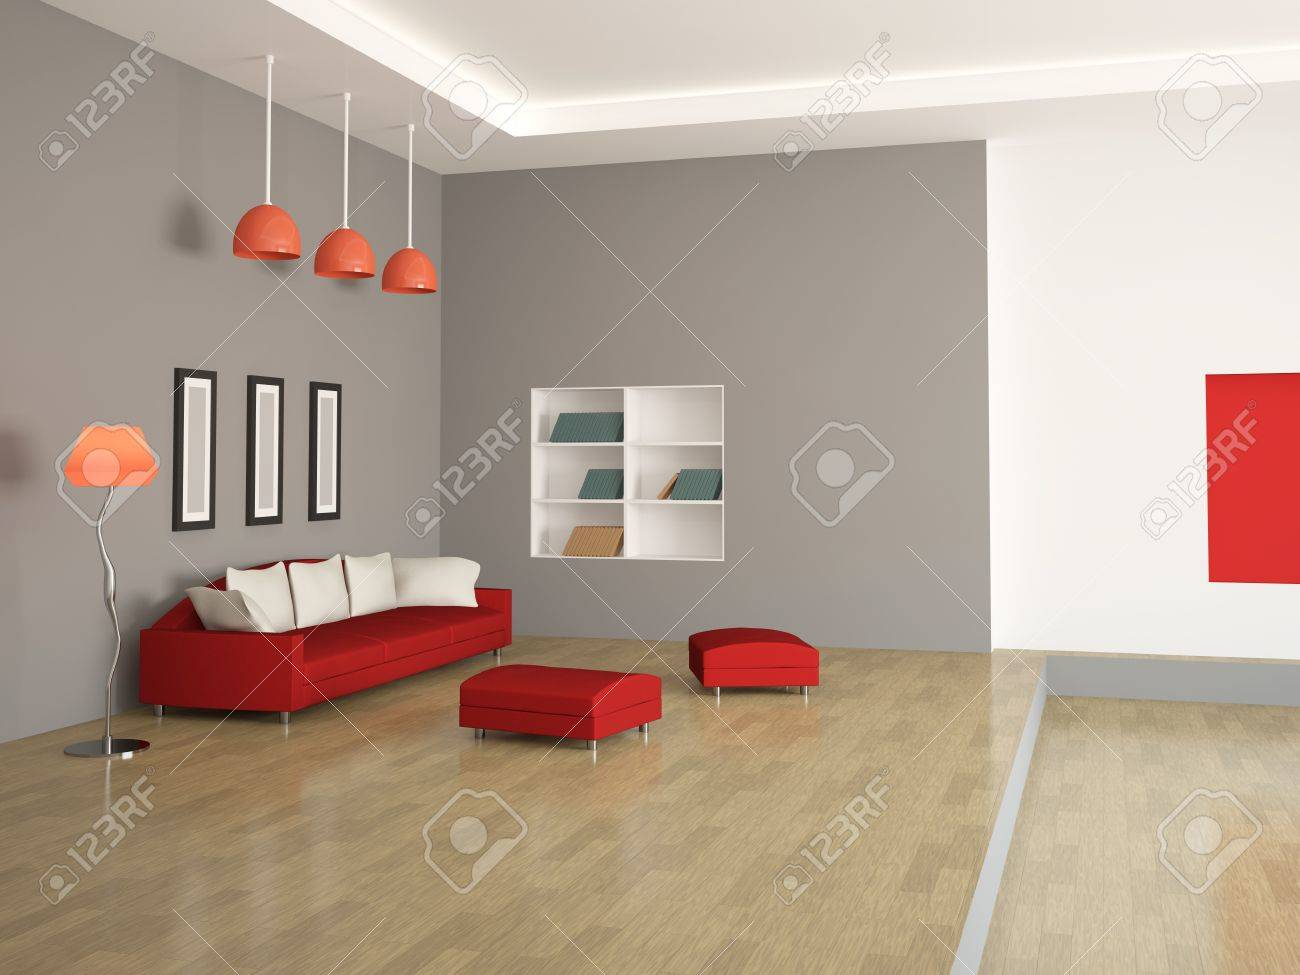 The interior of a large room with furniture Stock Photo - 13148616